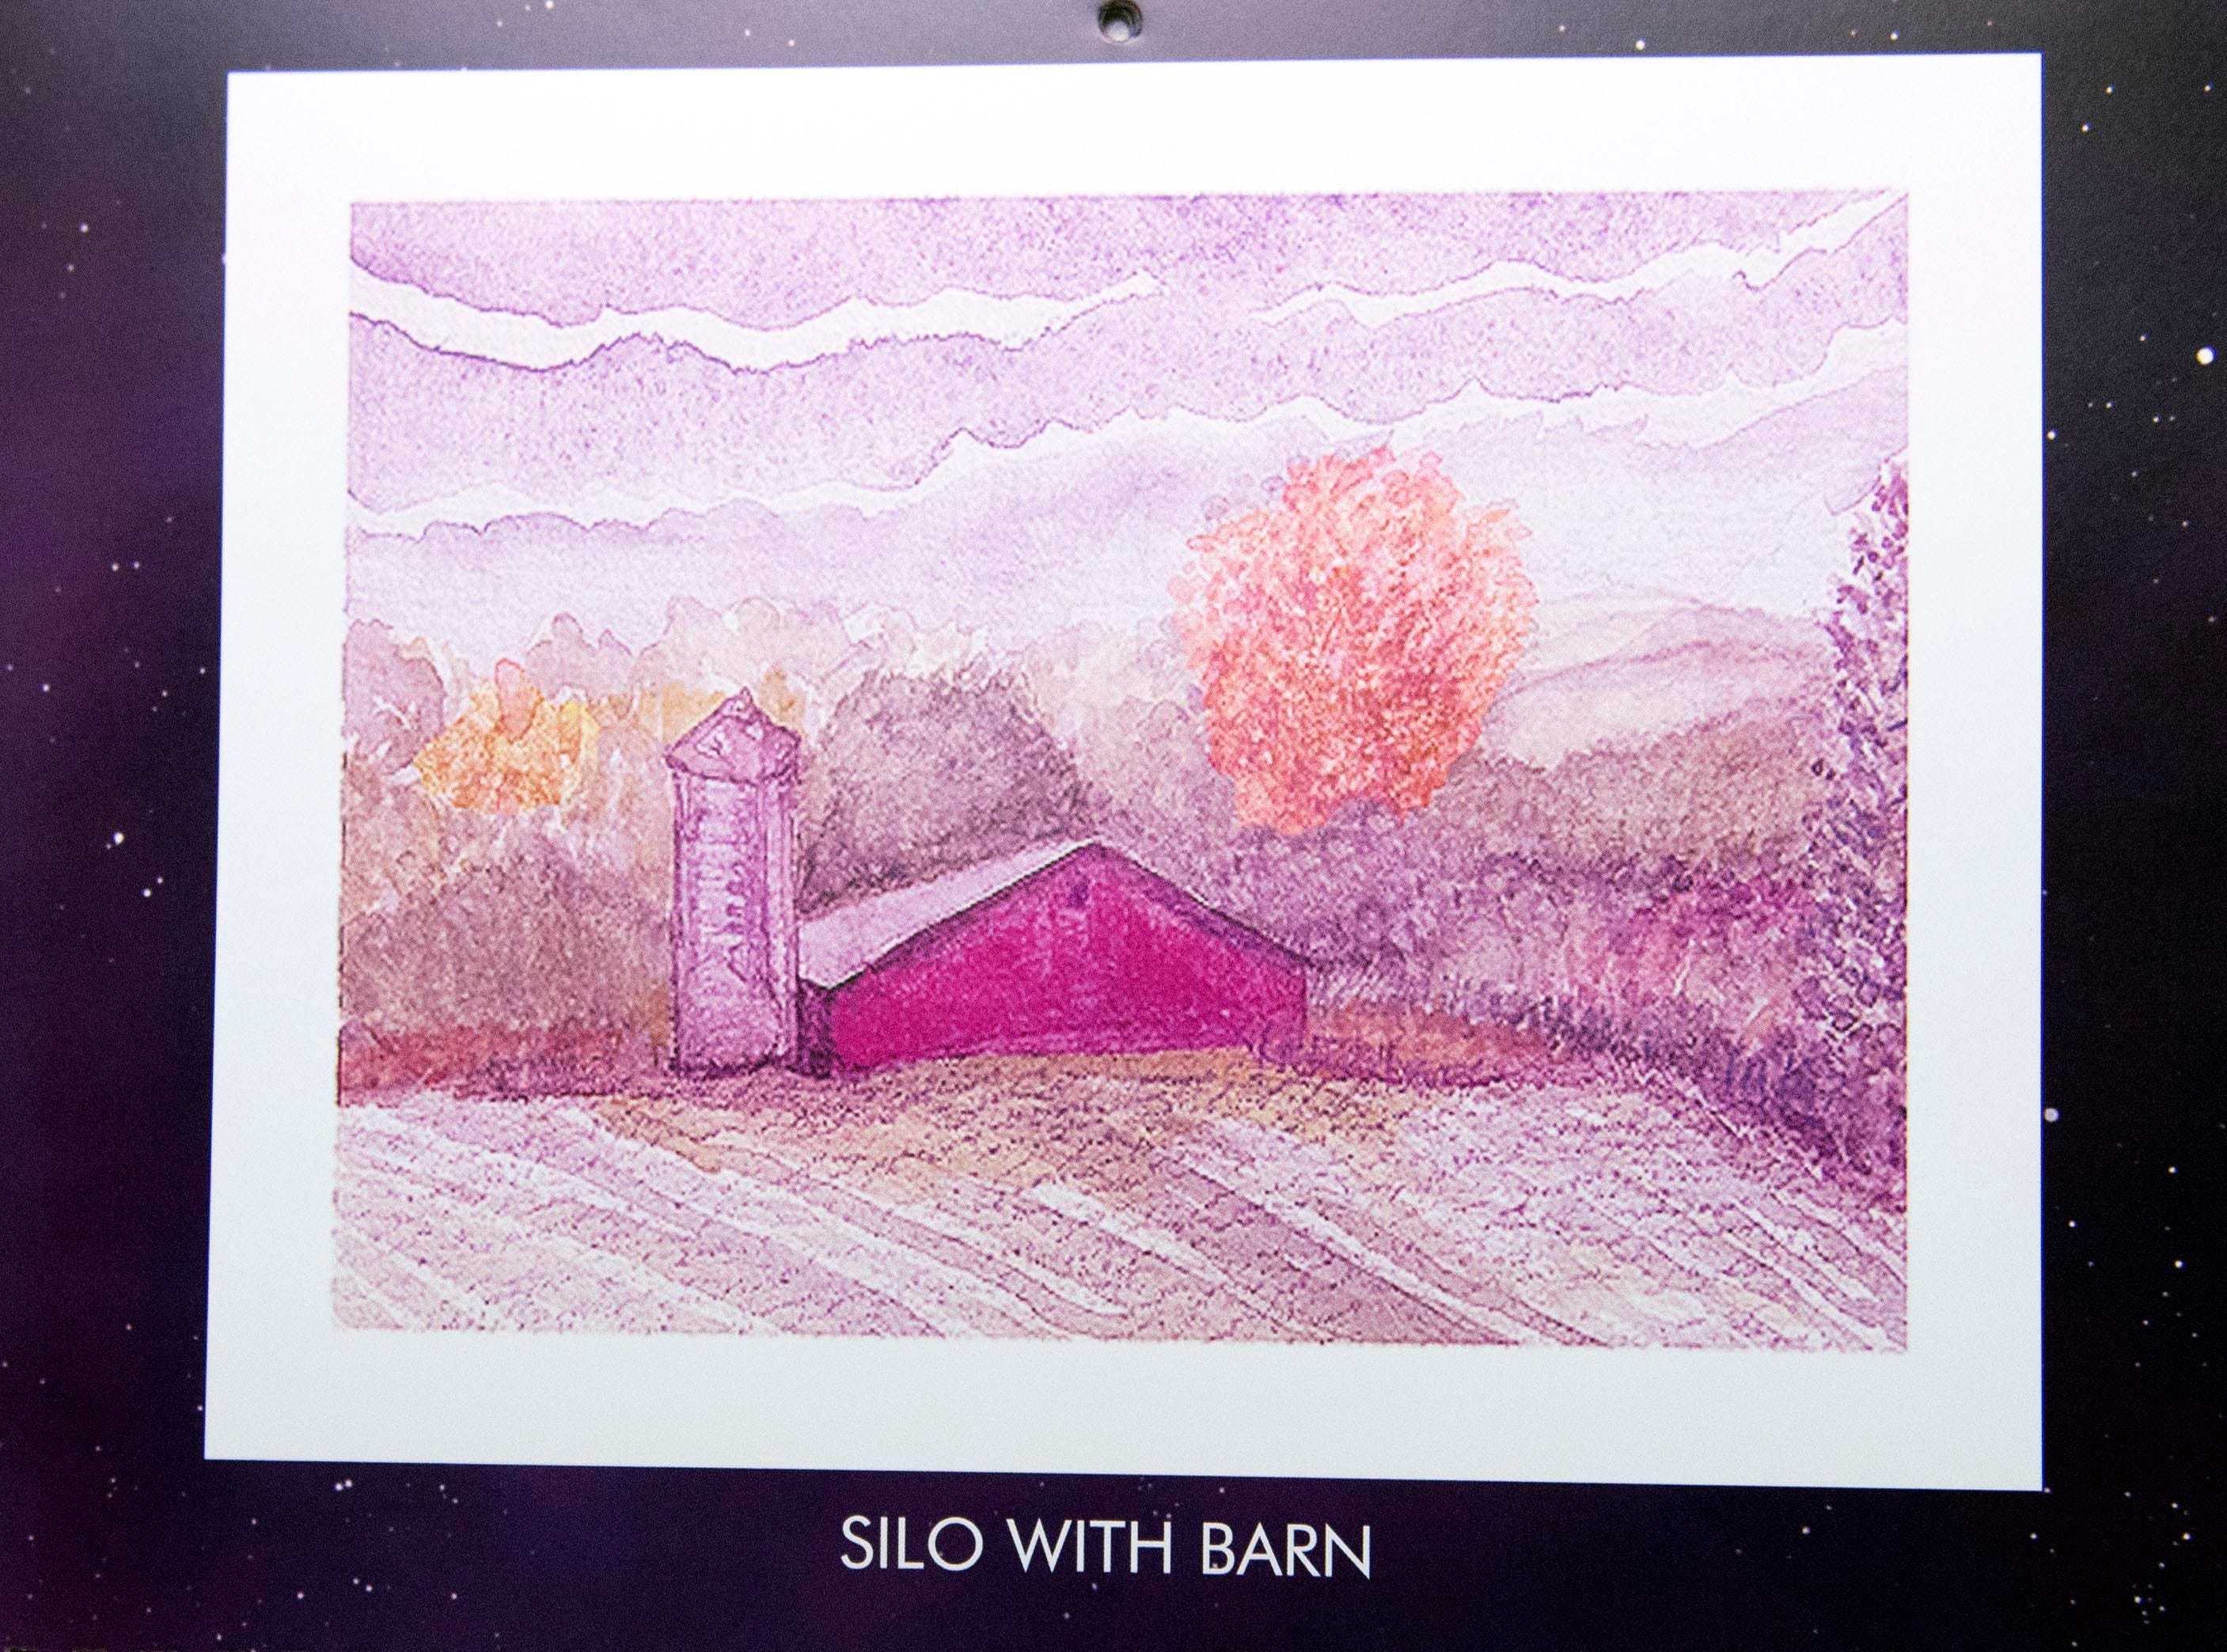 While Mary Magenta's paintings usually depict just landscapes, she hinted that in the future, she might paint more barns, like this painting that is seen on October's page. Magenta's 2019 calendar, 'Around Here,' features many places from York County.